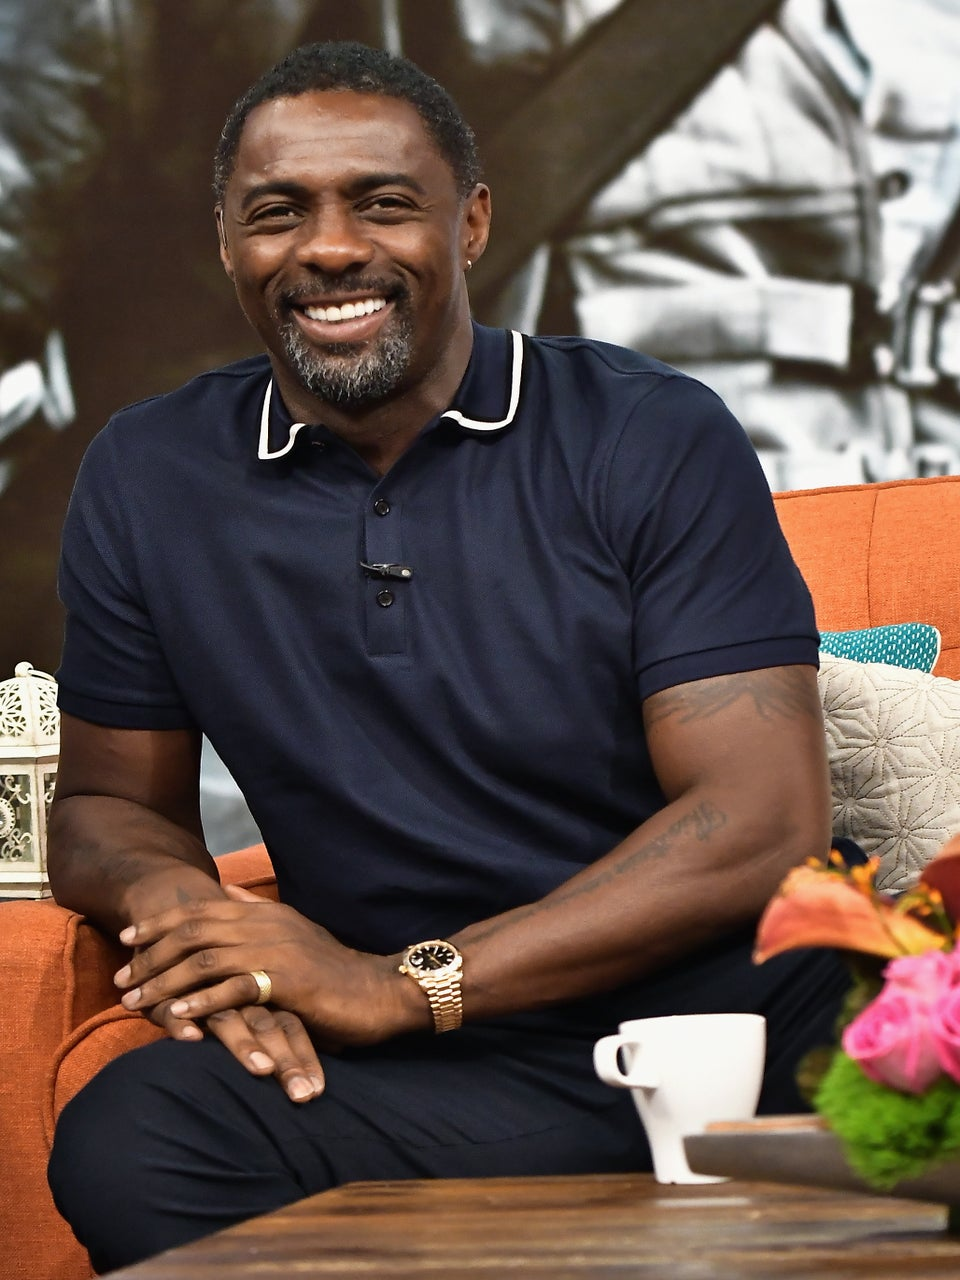 You'll Never Guess Which Classic Black Movie Hunk Role Idris Elba Once Auditioned For